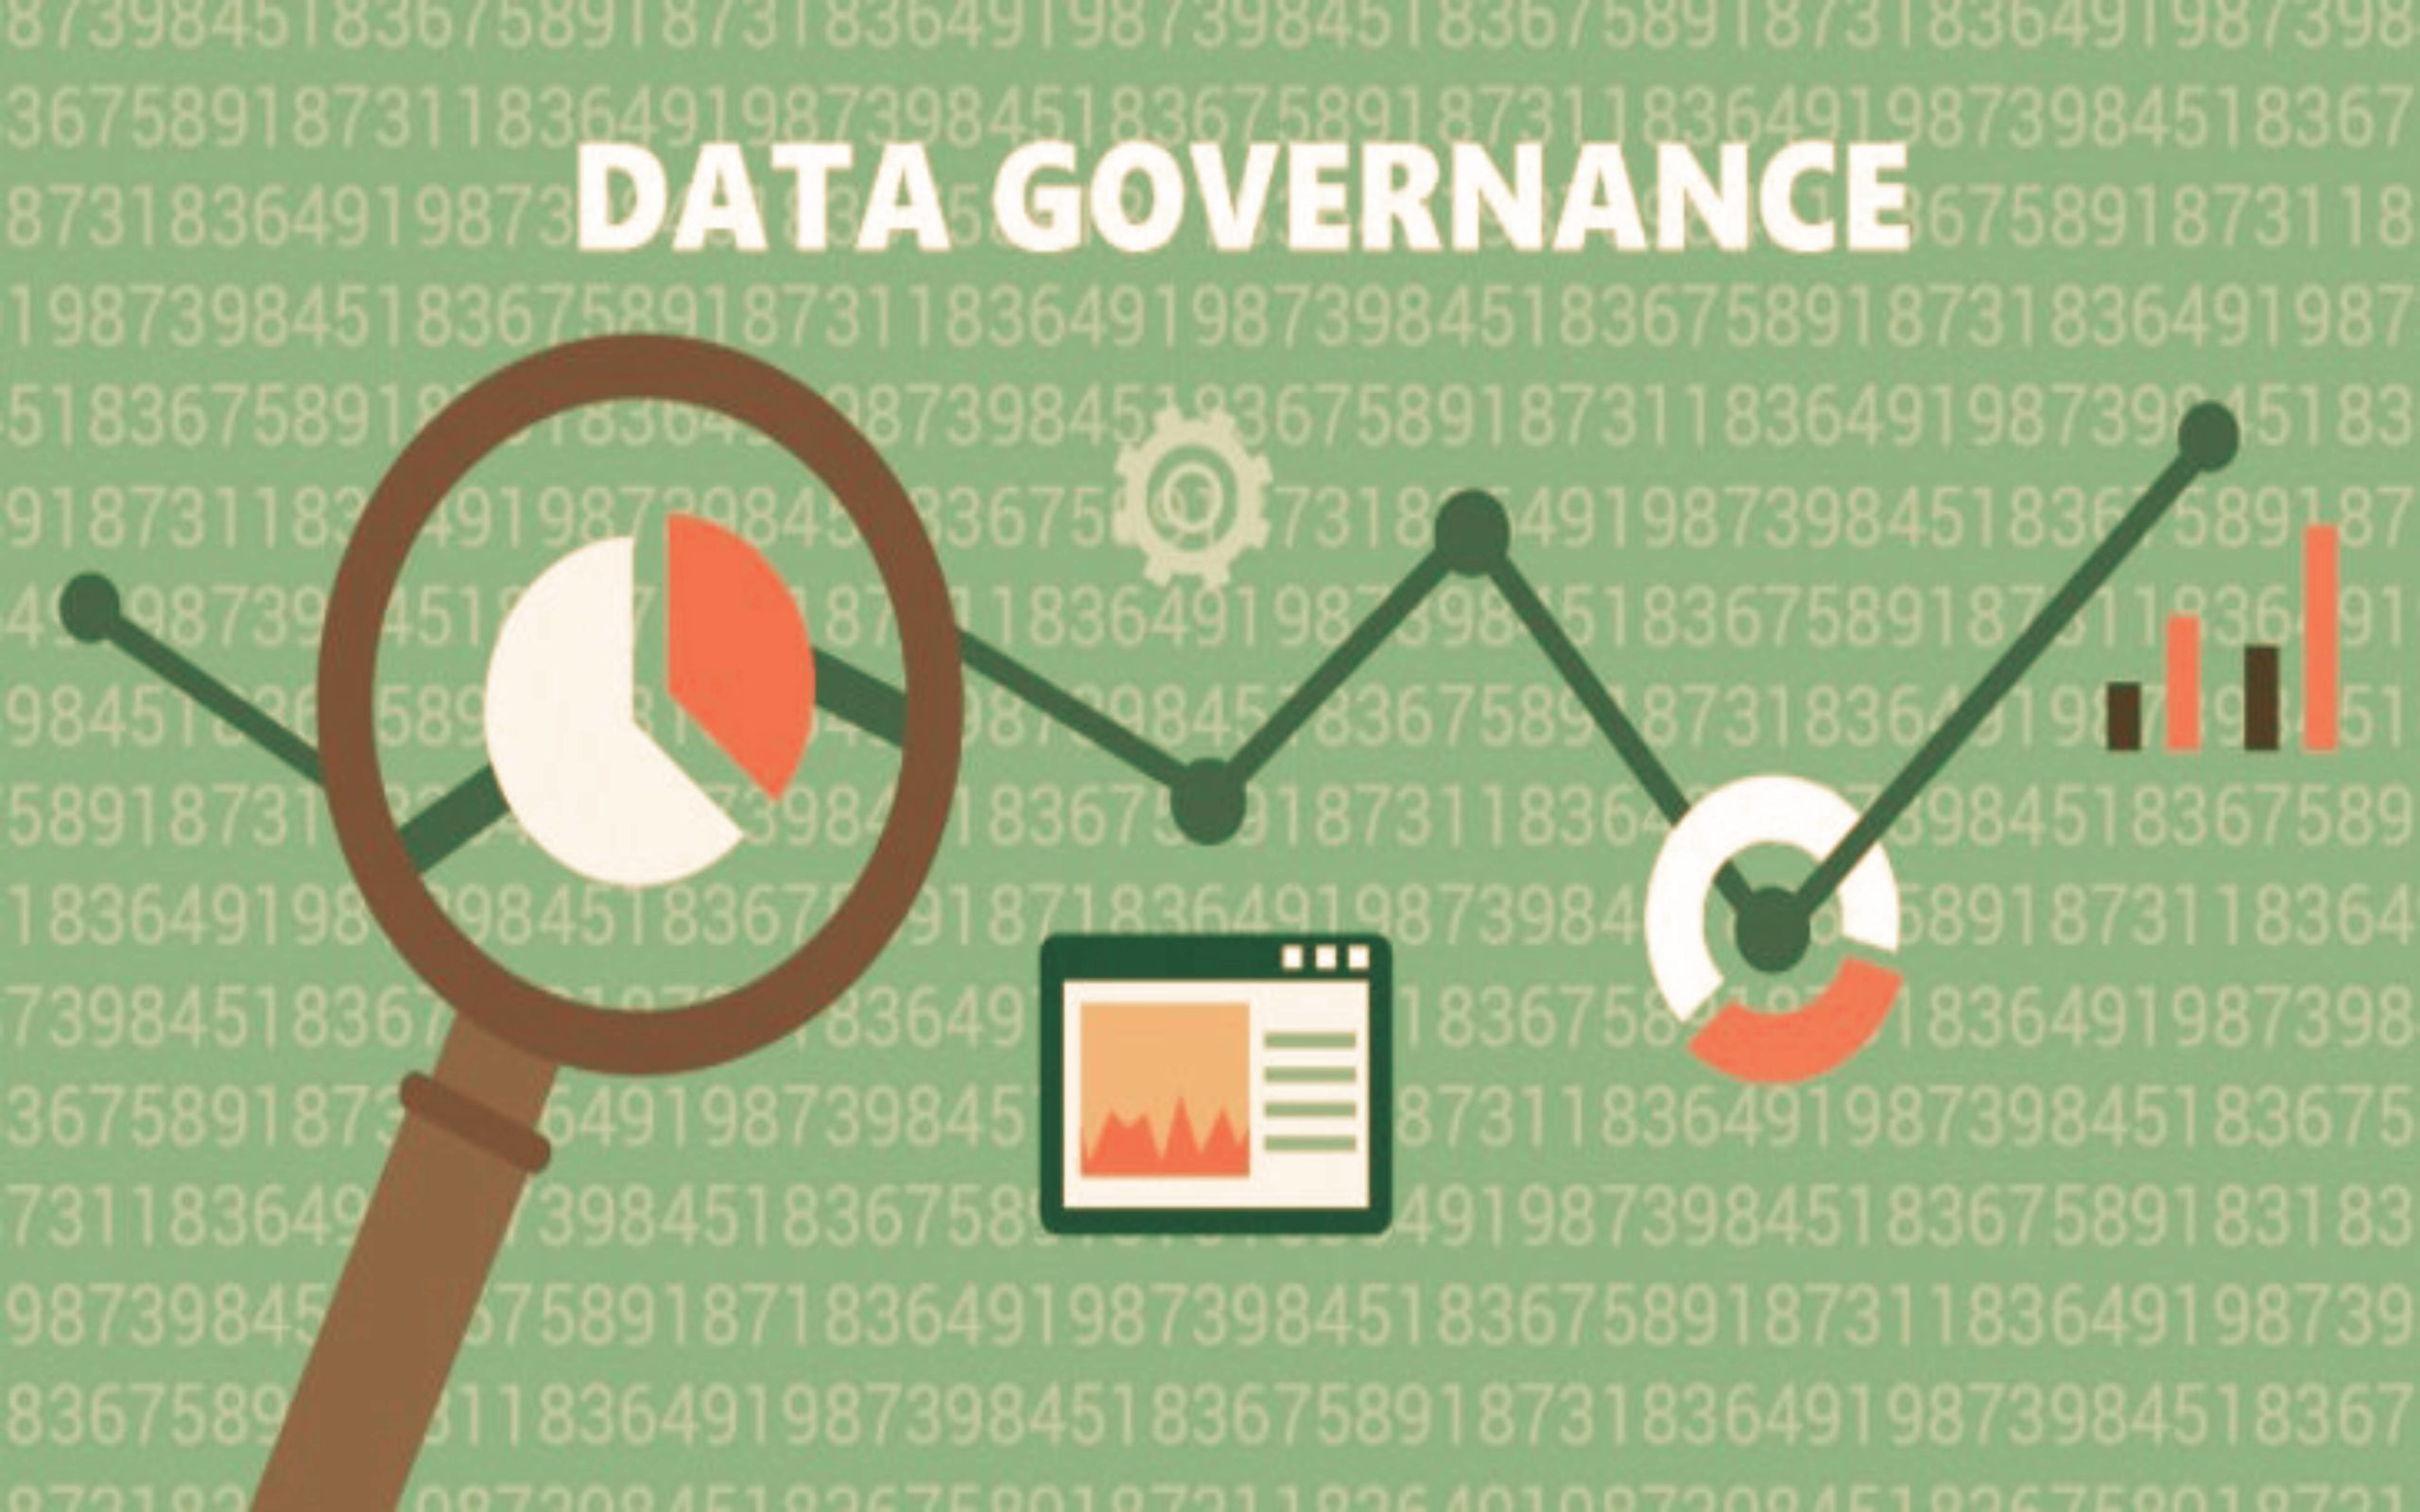 Data Governance – What is Data Governance?